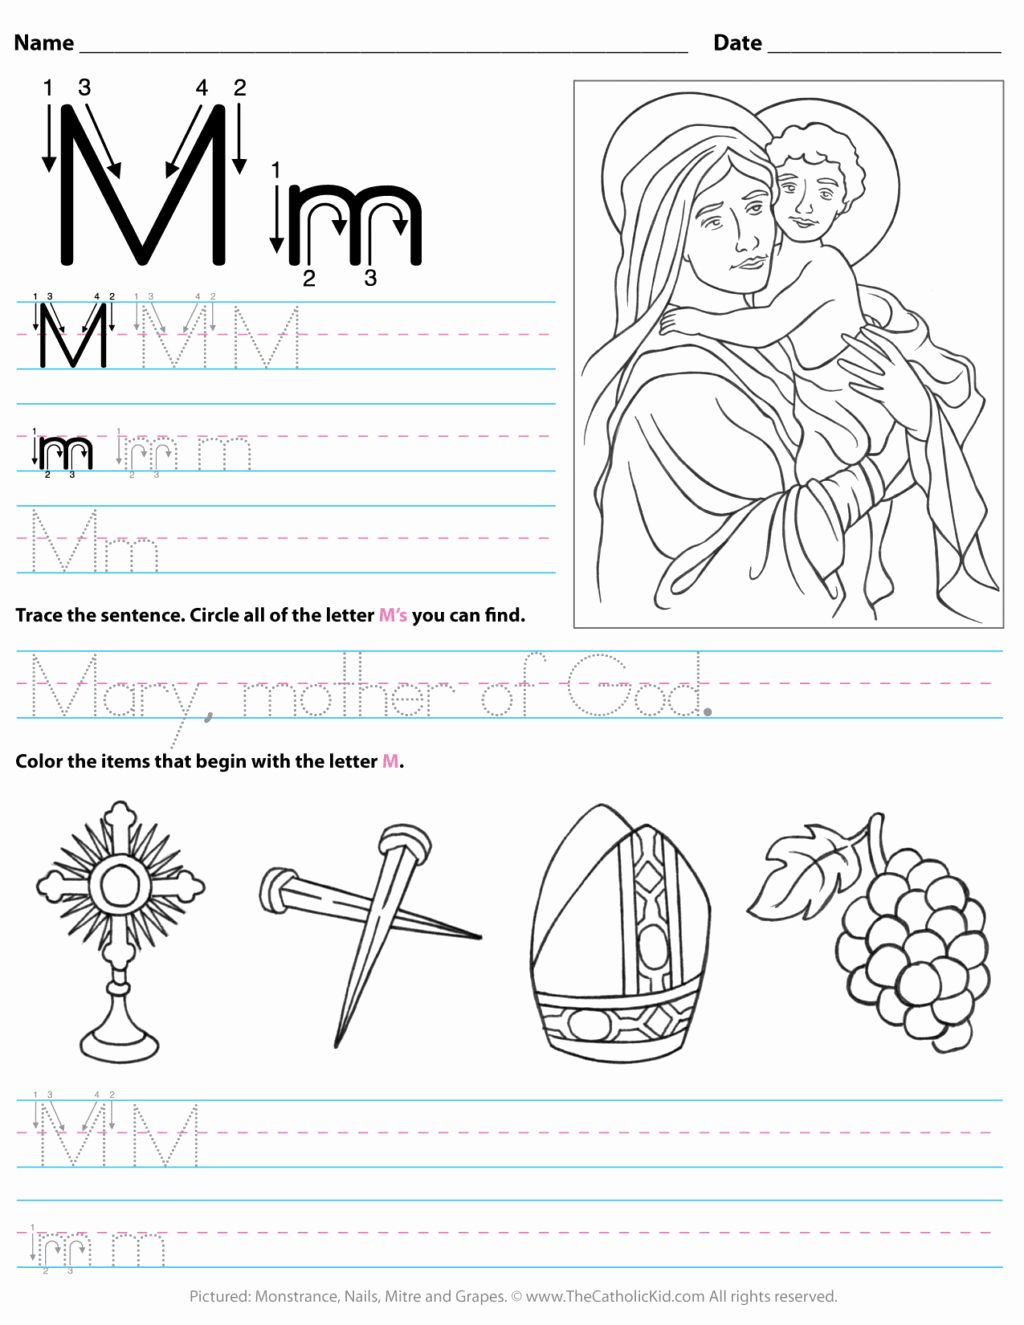 Worksheets for Preschoolers Letter M Printable Worksheet Worksheet Catholic Alphabet Letter M Preschool